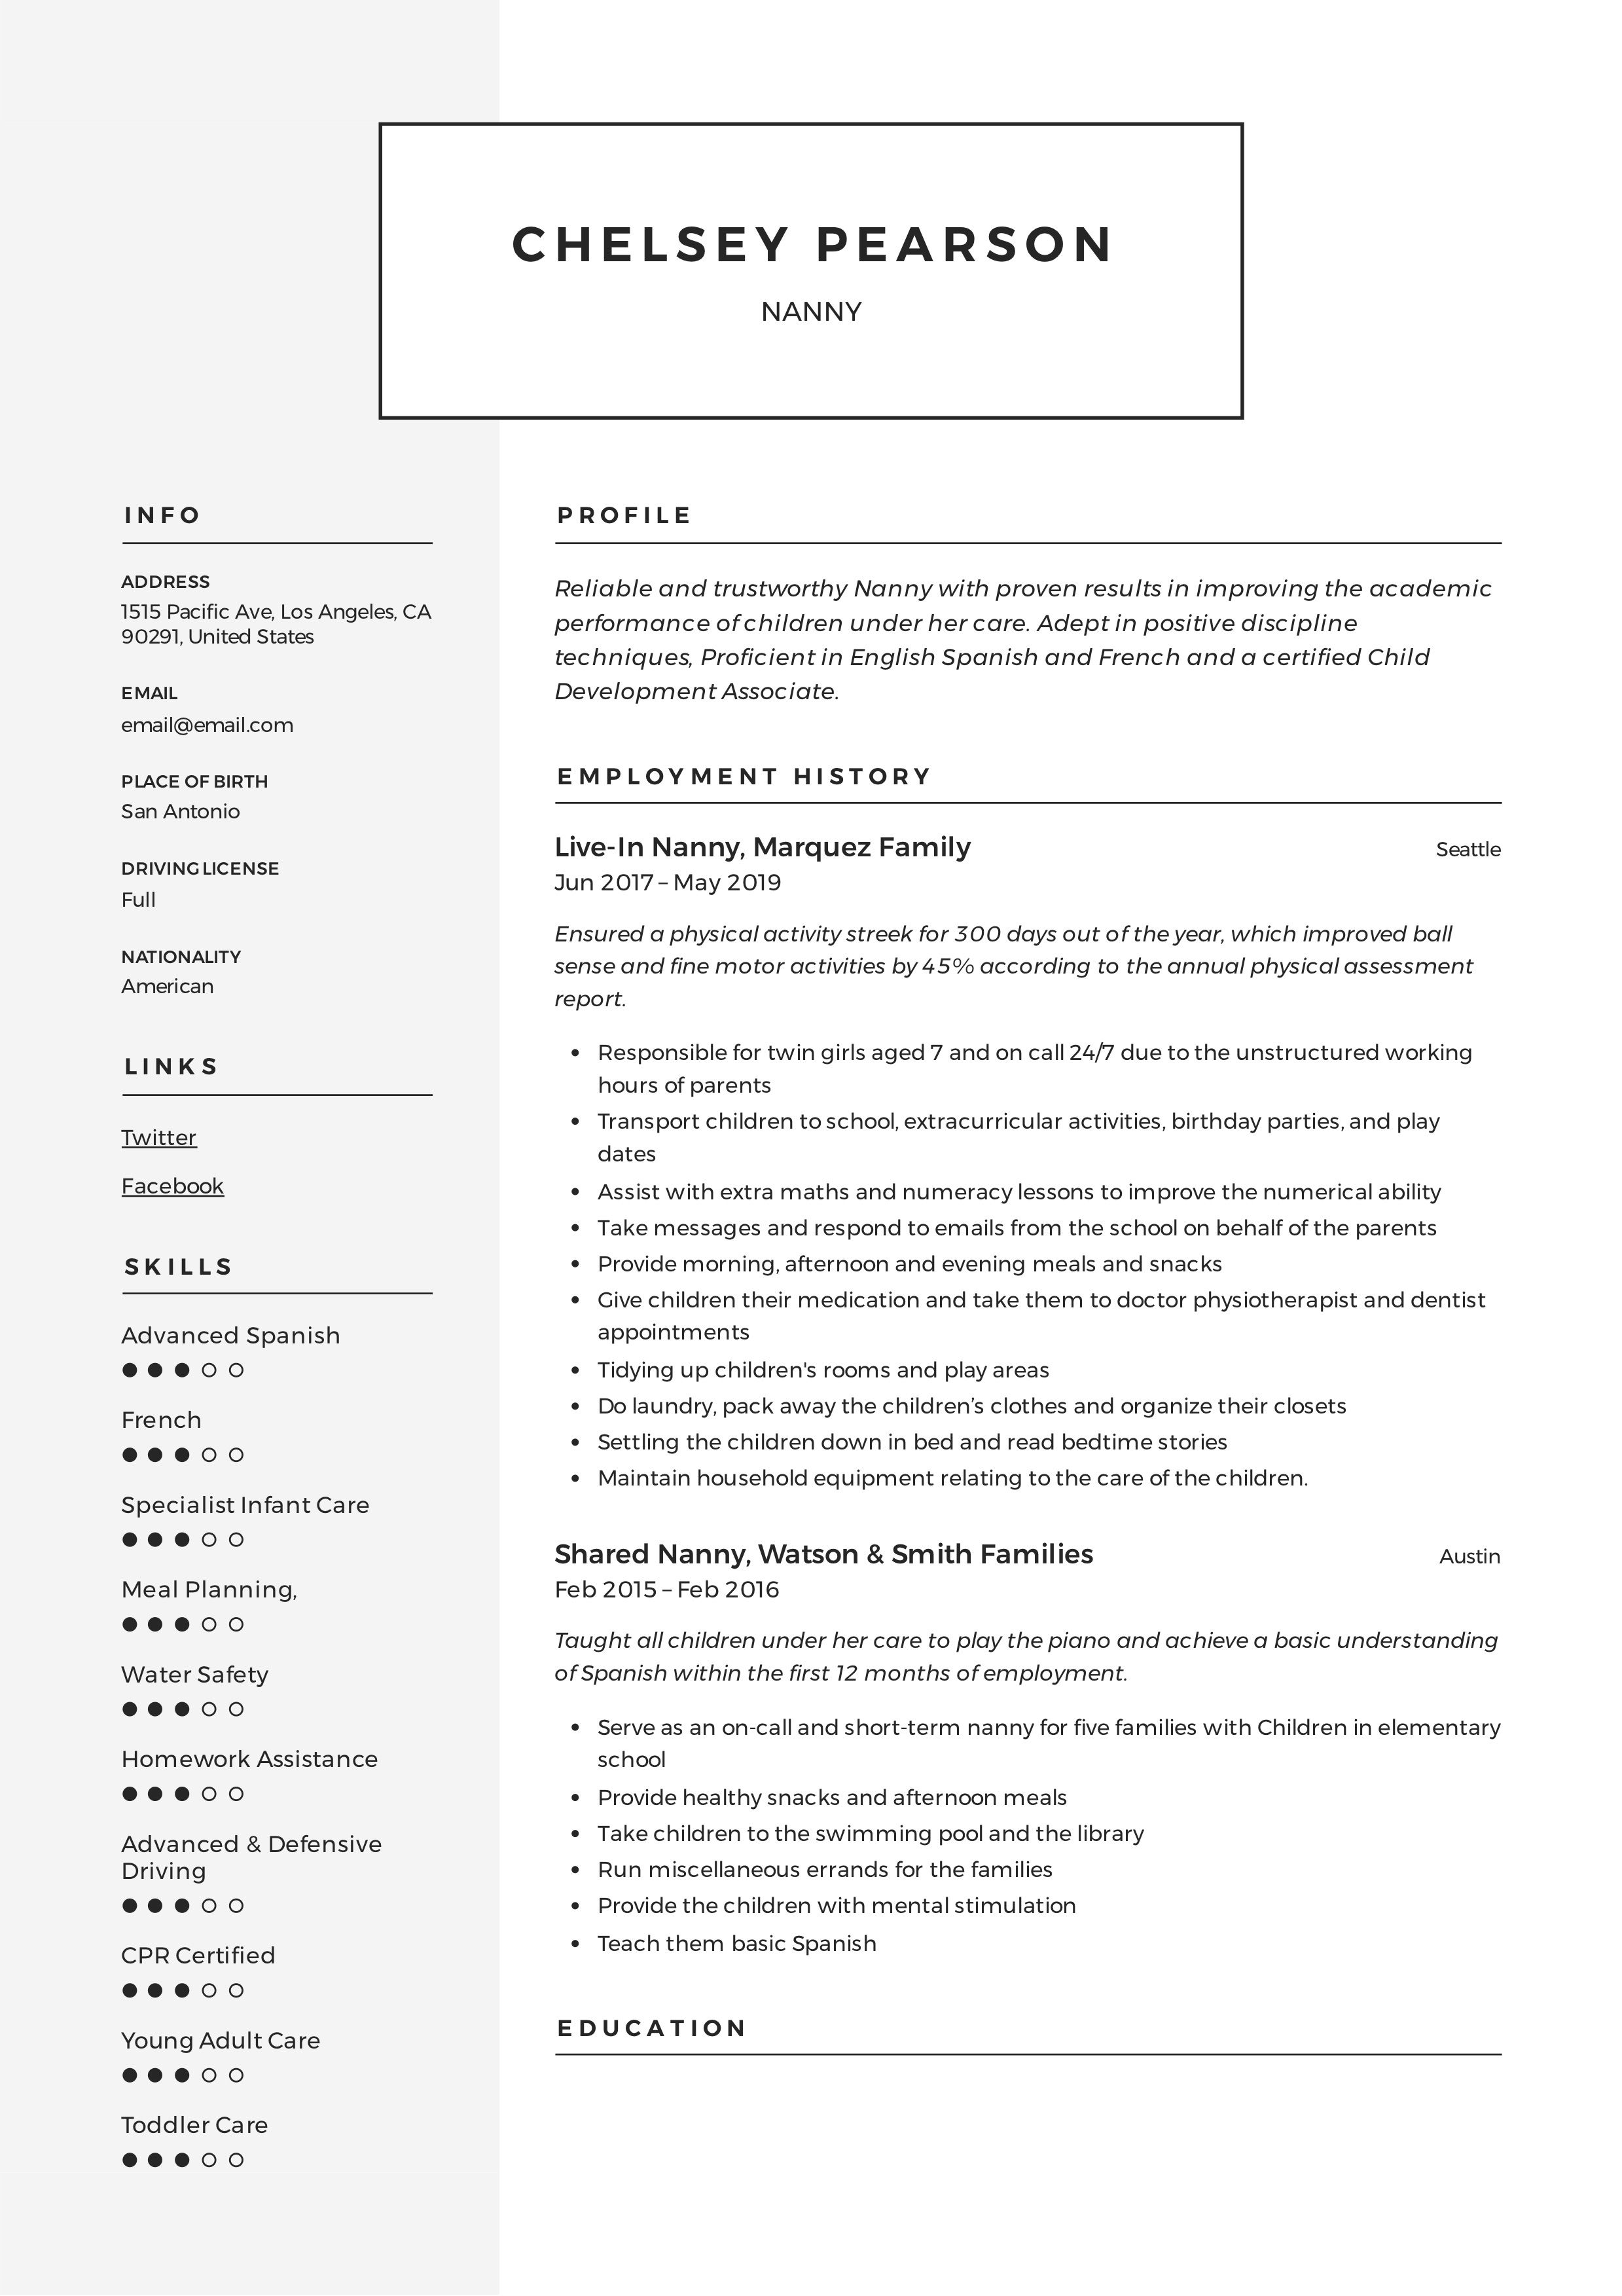 Nanny Resume & Writing Guide in 2020 Resume guide